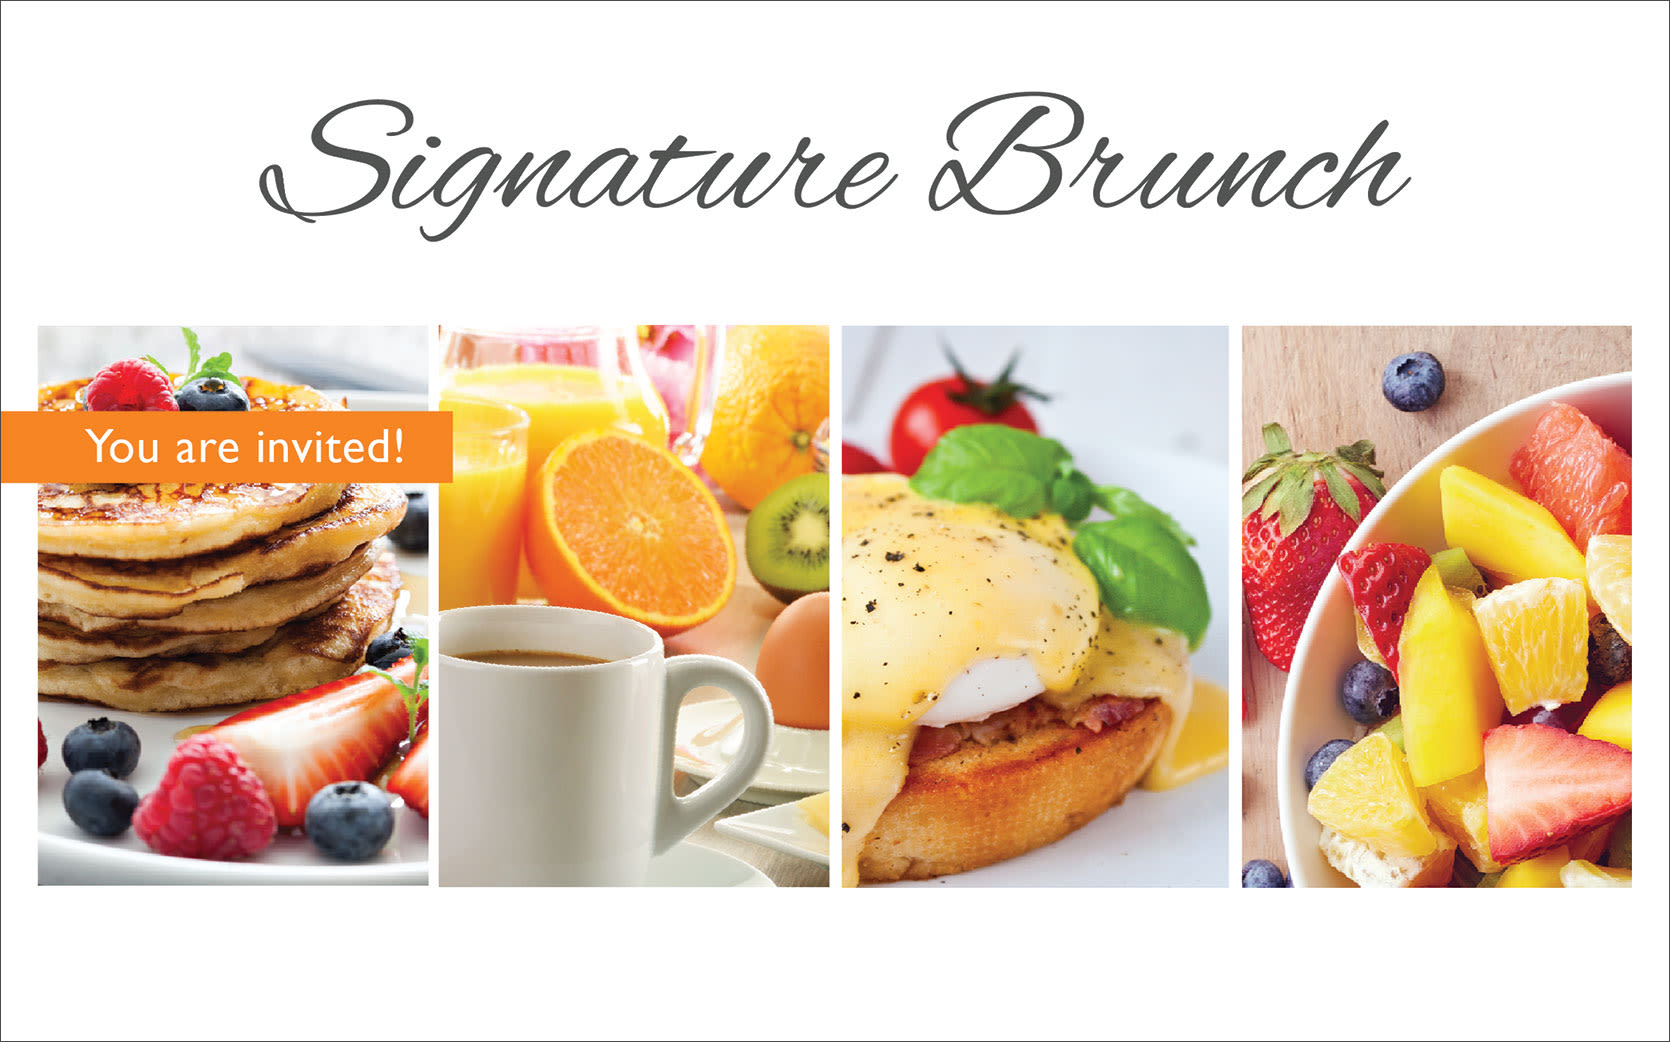 Signature brunch at the senior living community in Clearfield